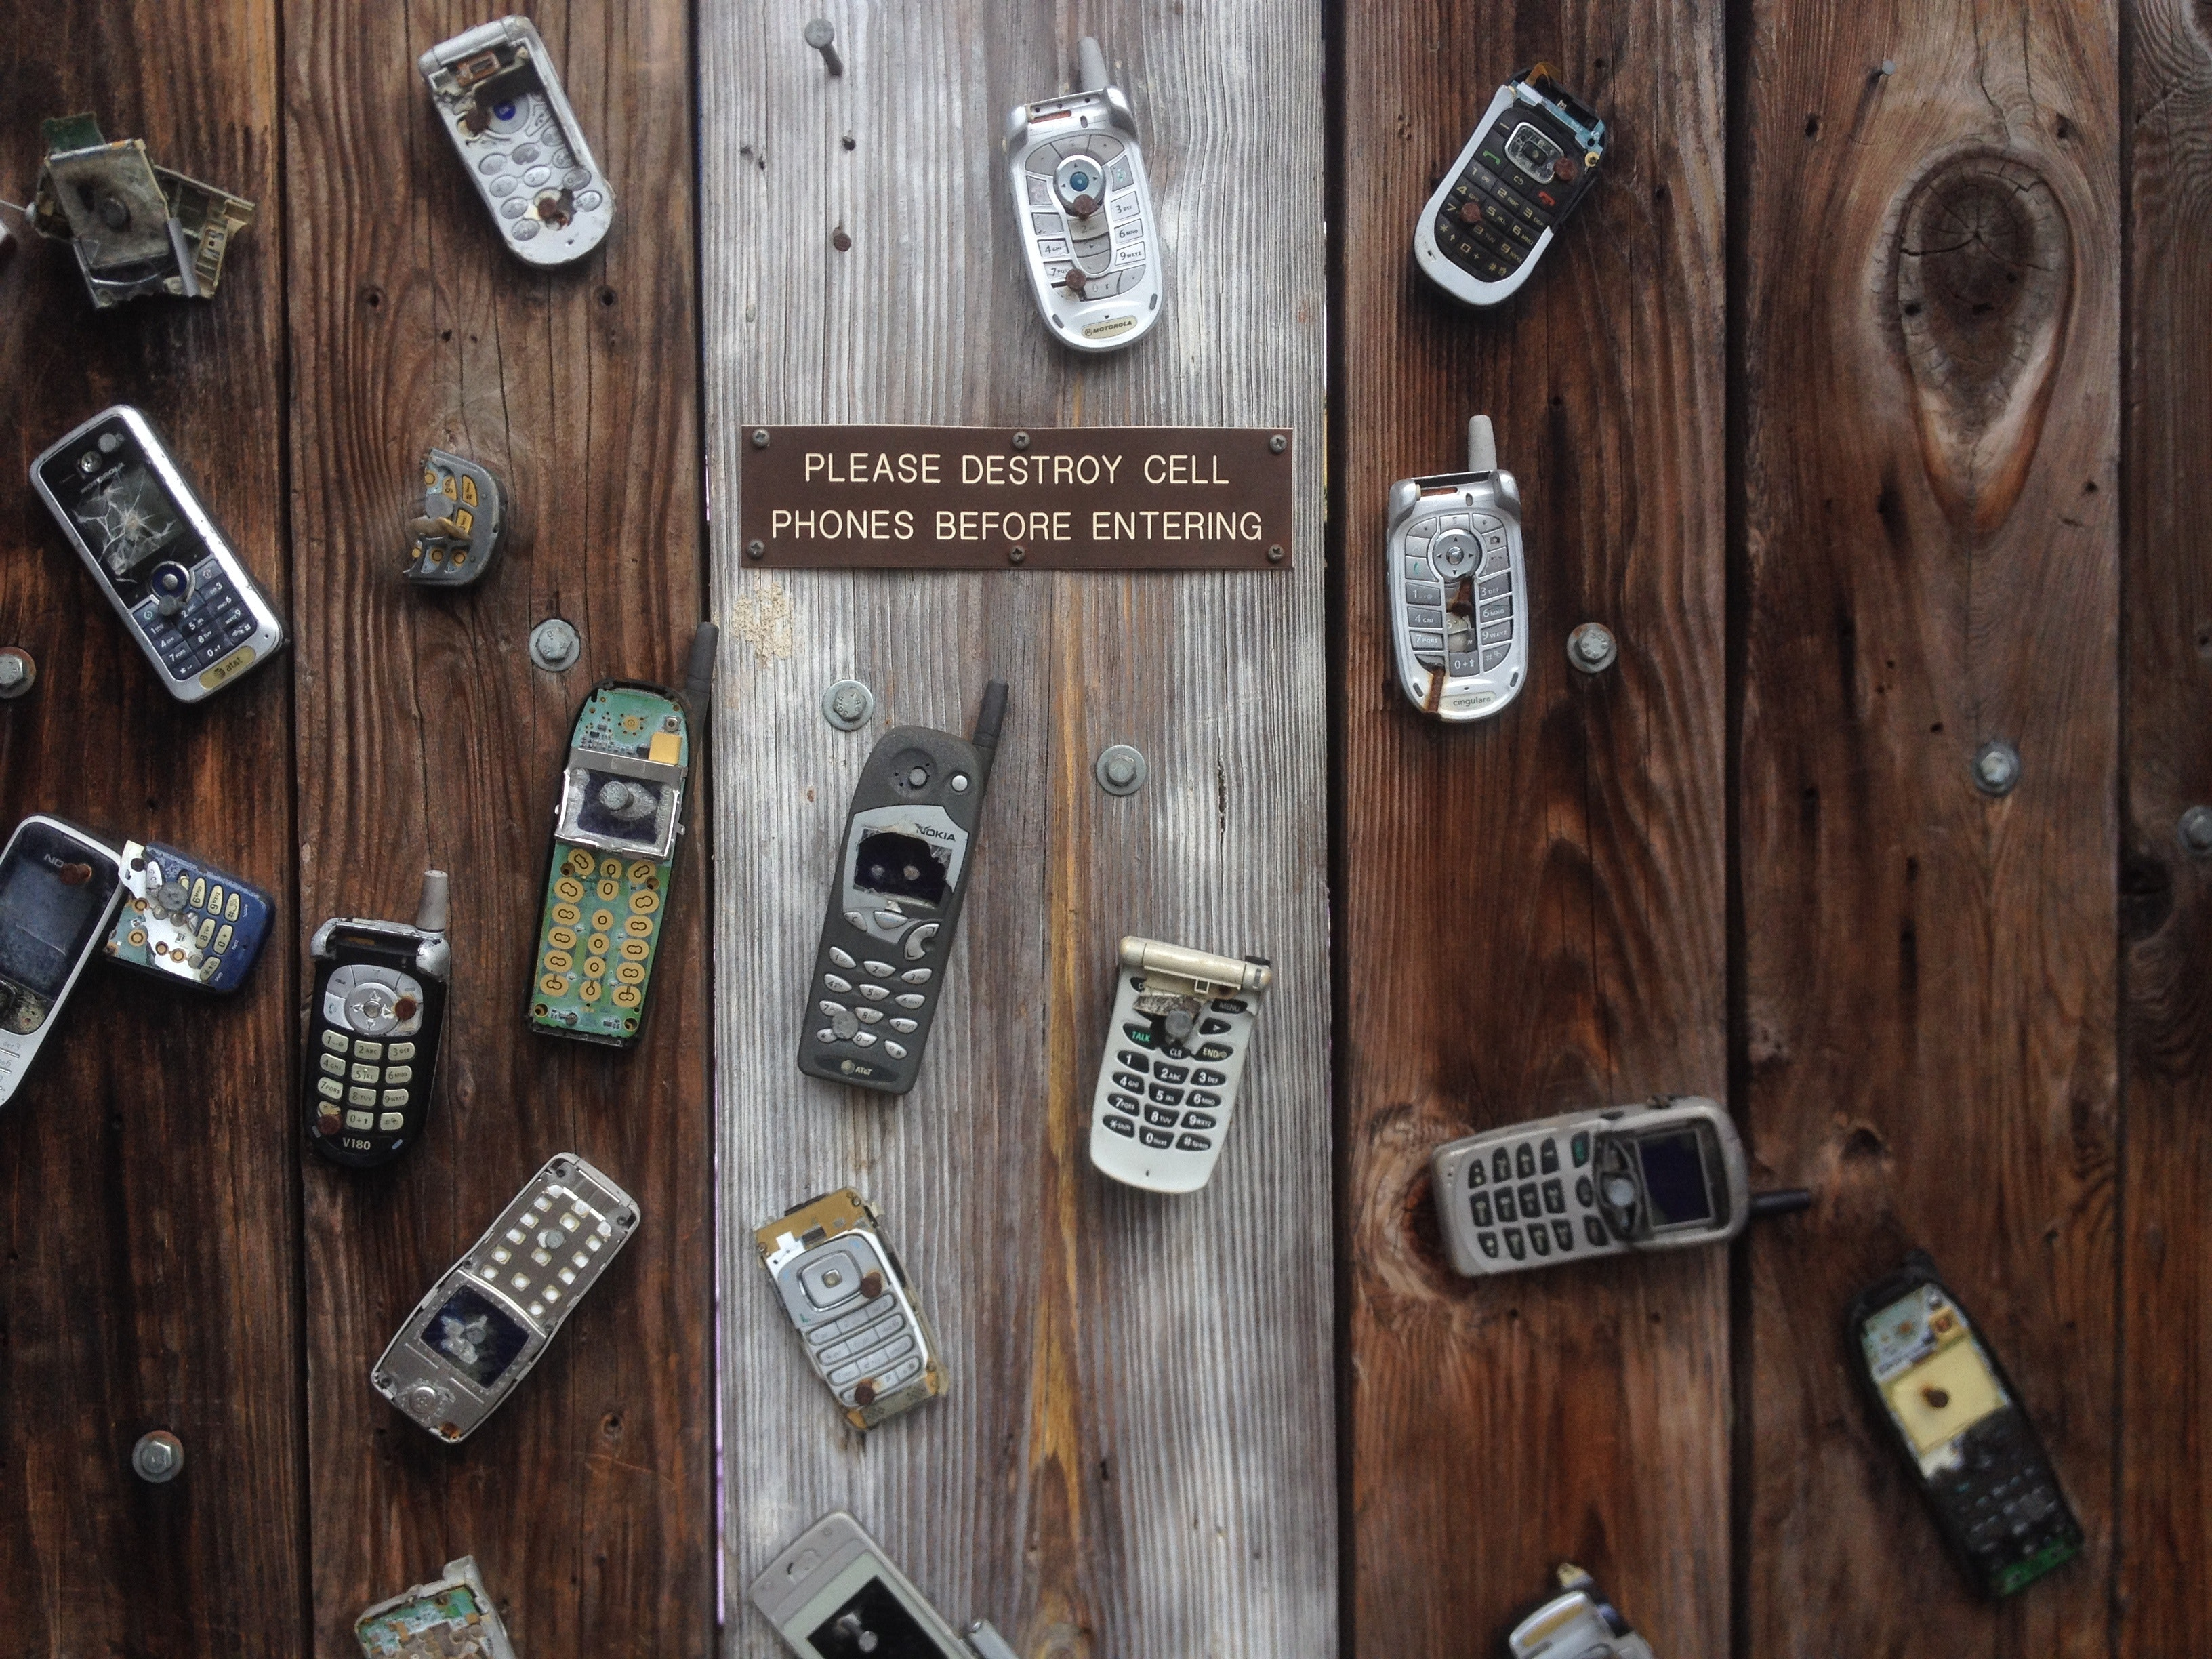 19 very old cell phones on pieces of weathered wood with a sign that says: Please Destroy Cell Phones Before Entering.